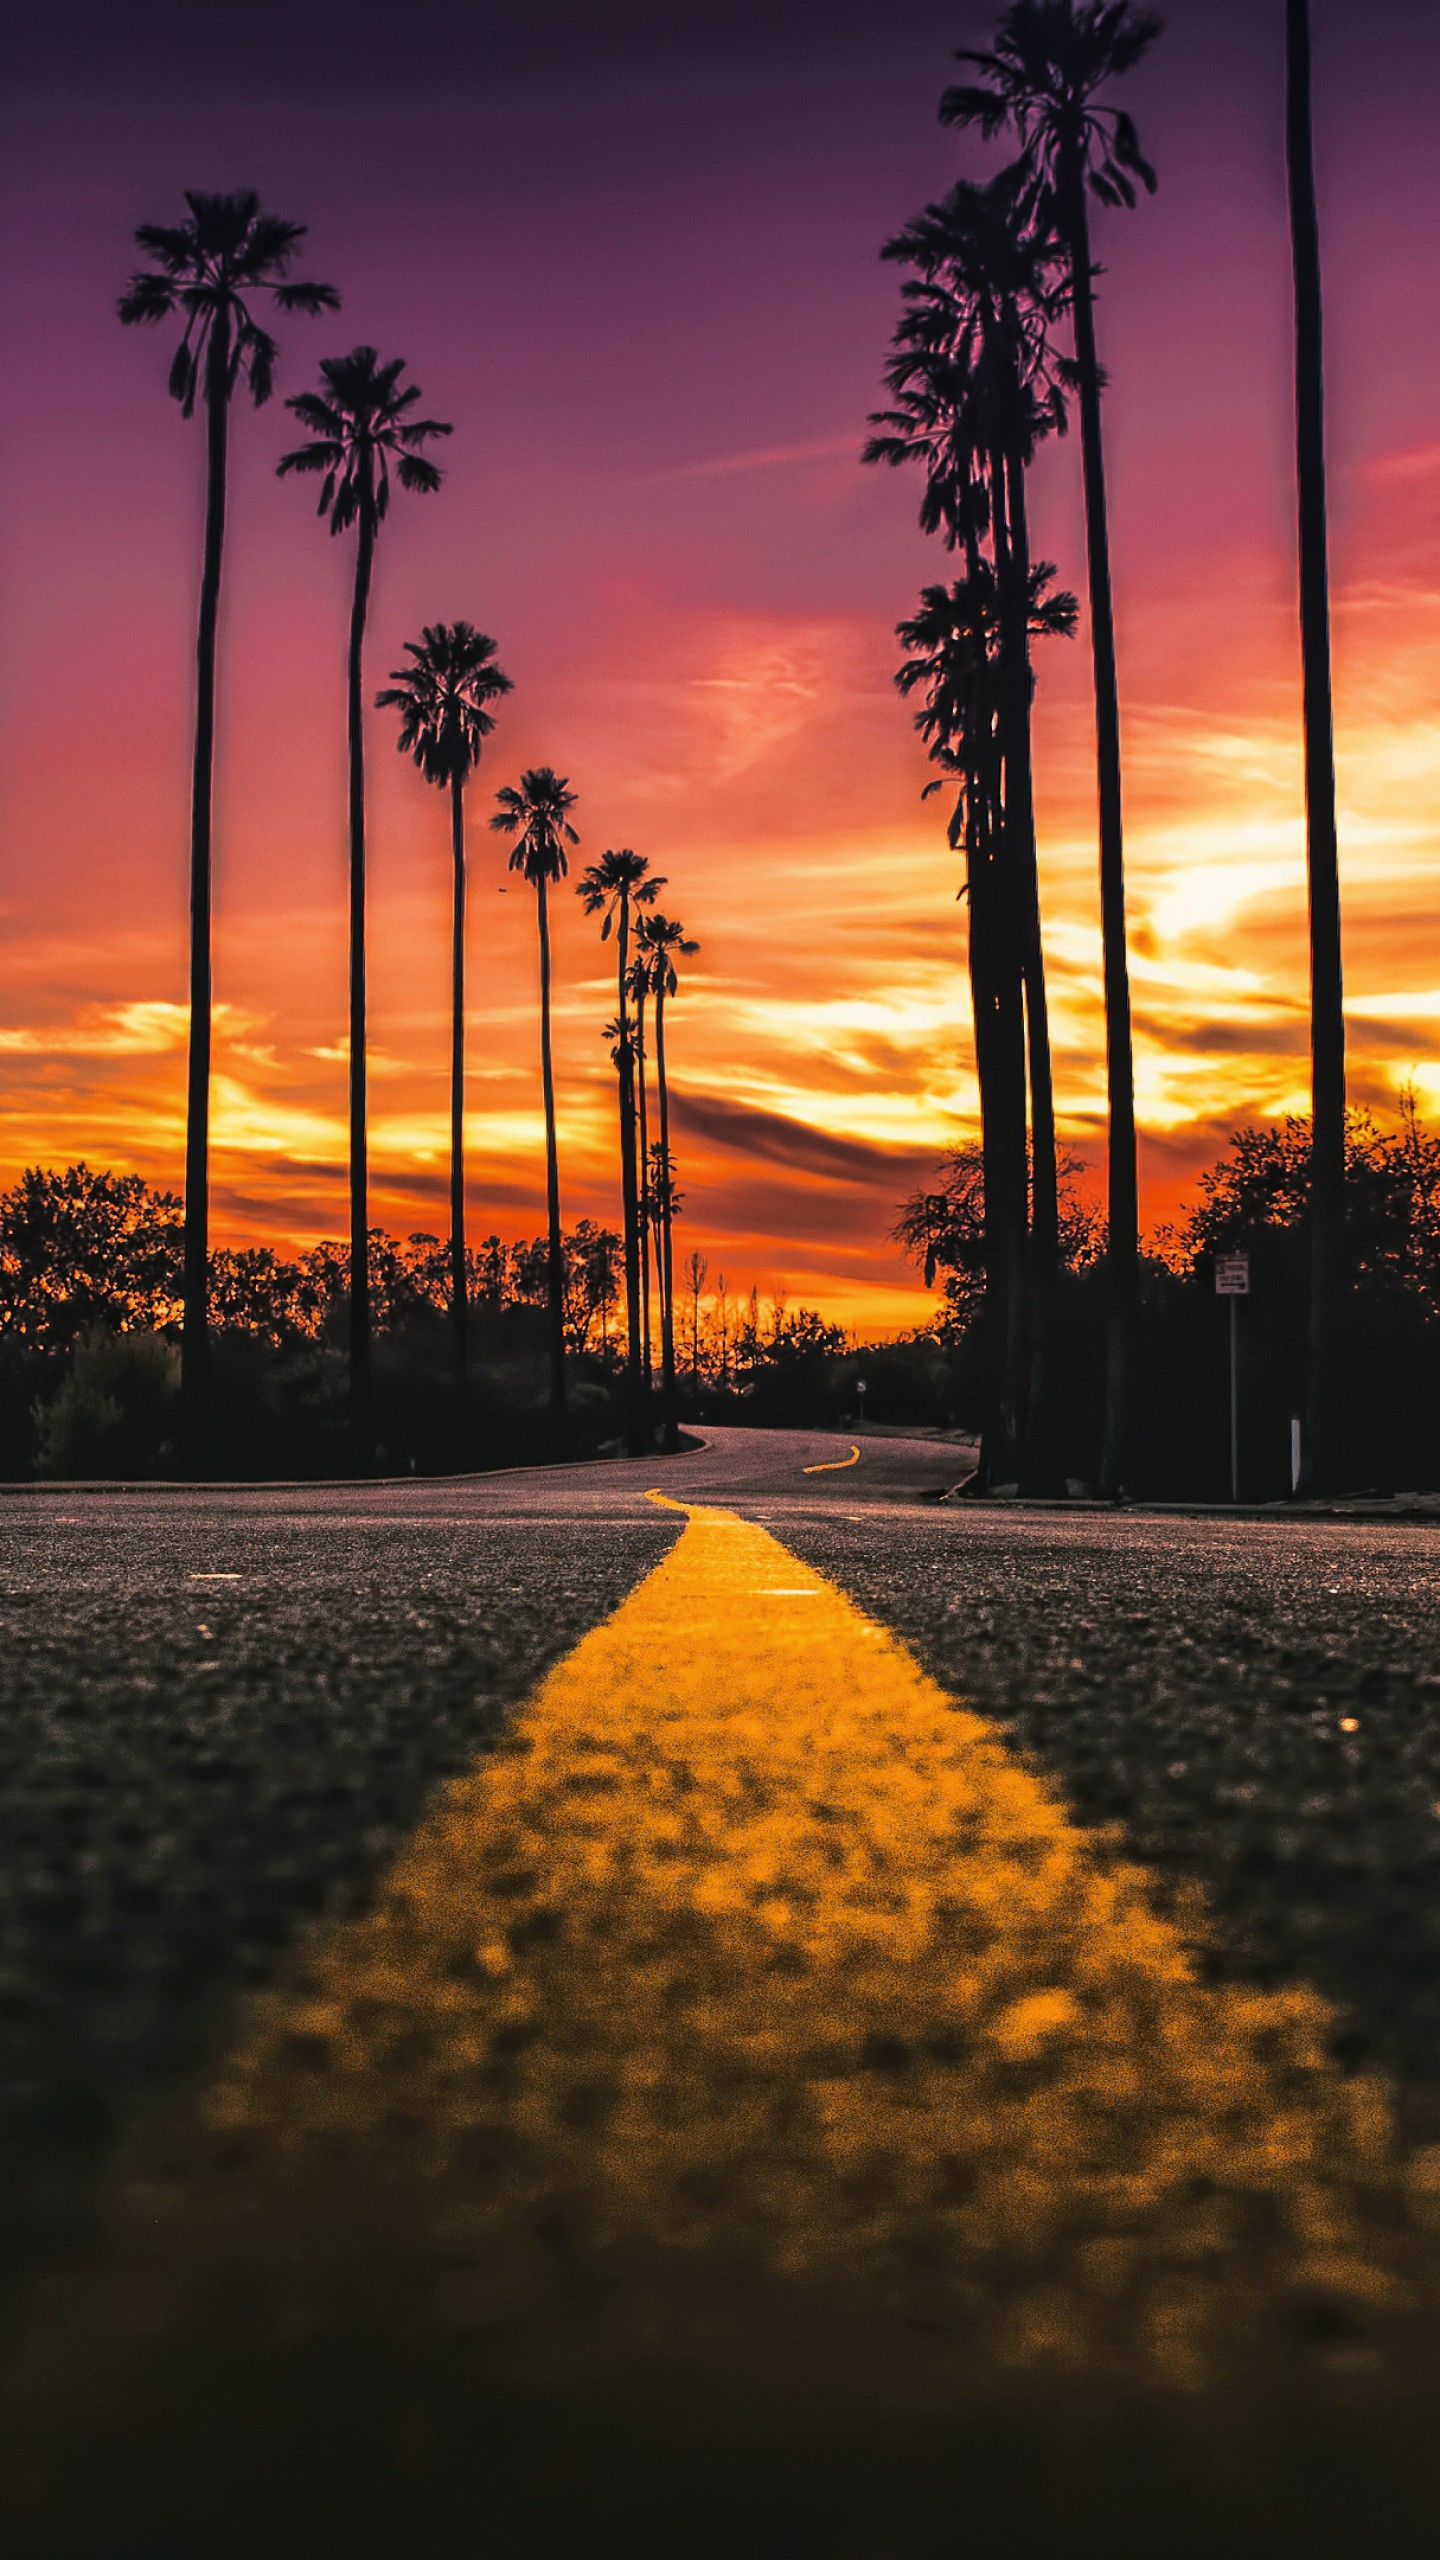 Quotes Iphone Wallpaper Pinterest Stock Images Los Angeles California Road Palms Sunset